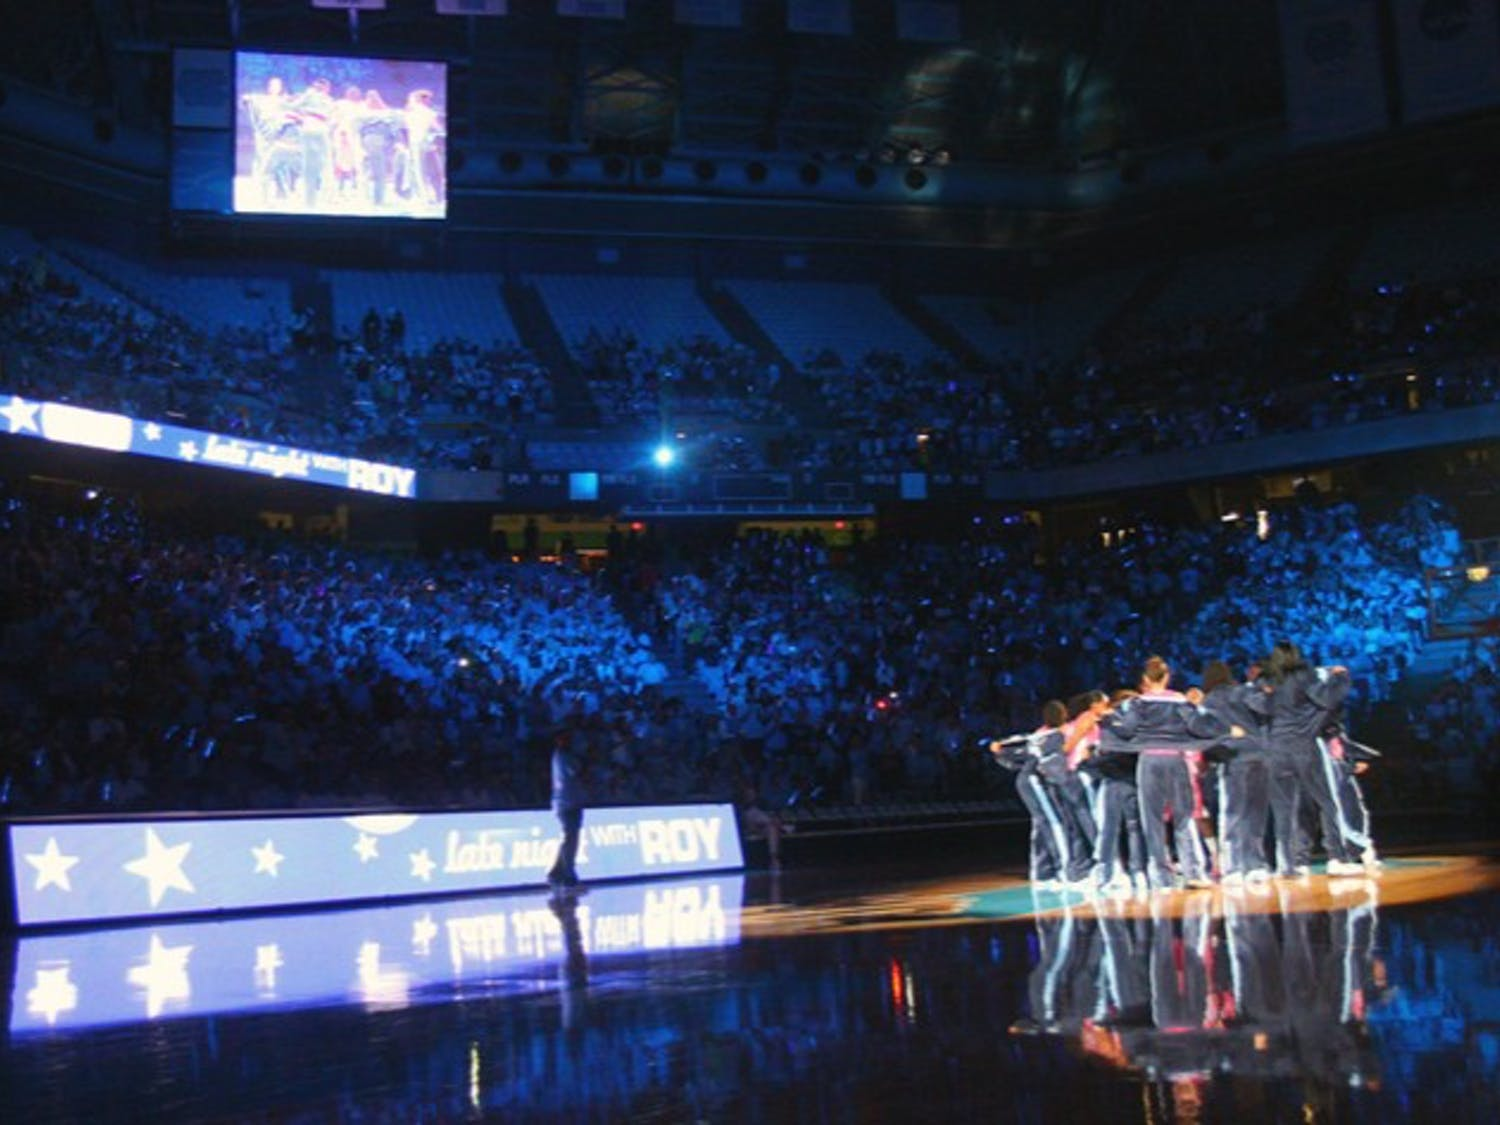 The UNC women's basketball team unveils its pink uniforms after its introduction at Late Night with Roy.